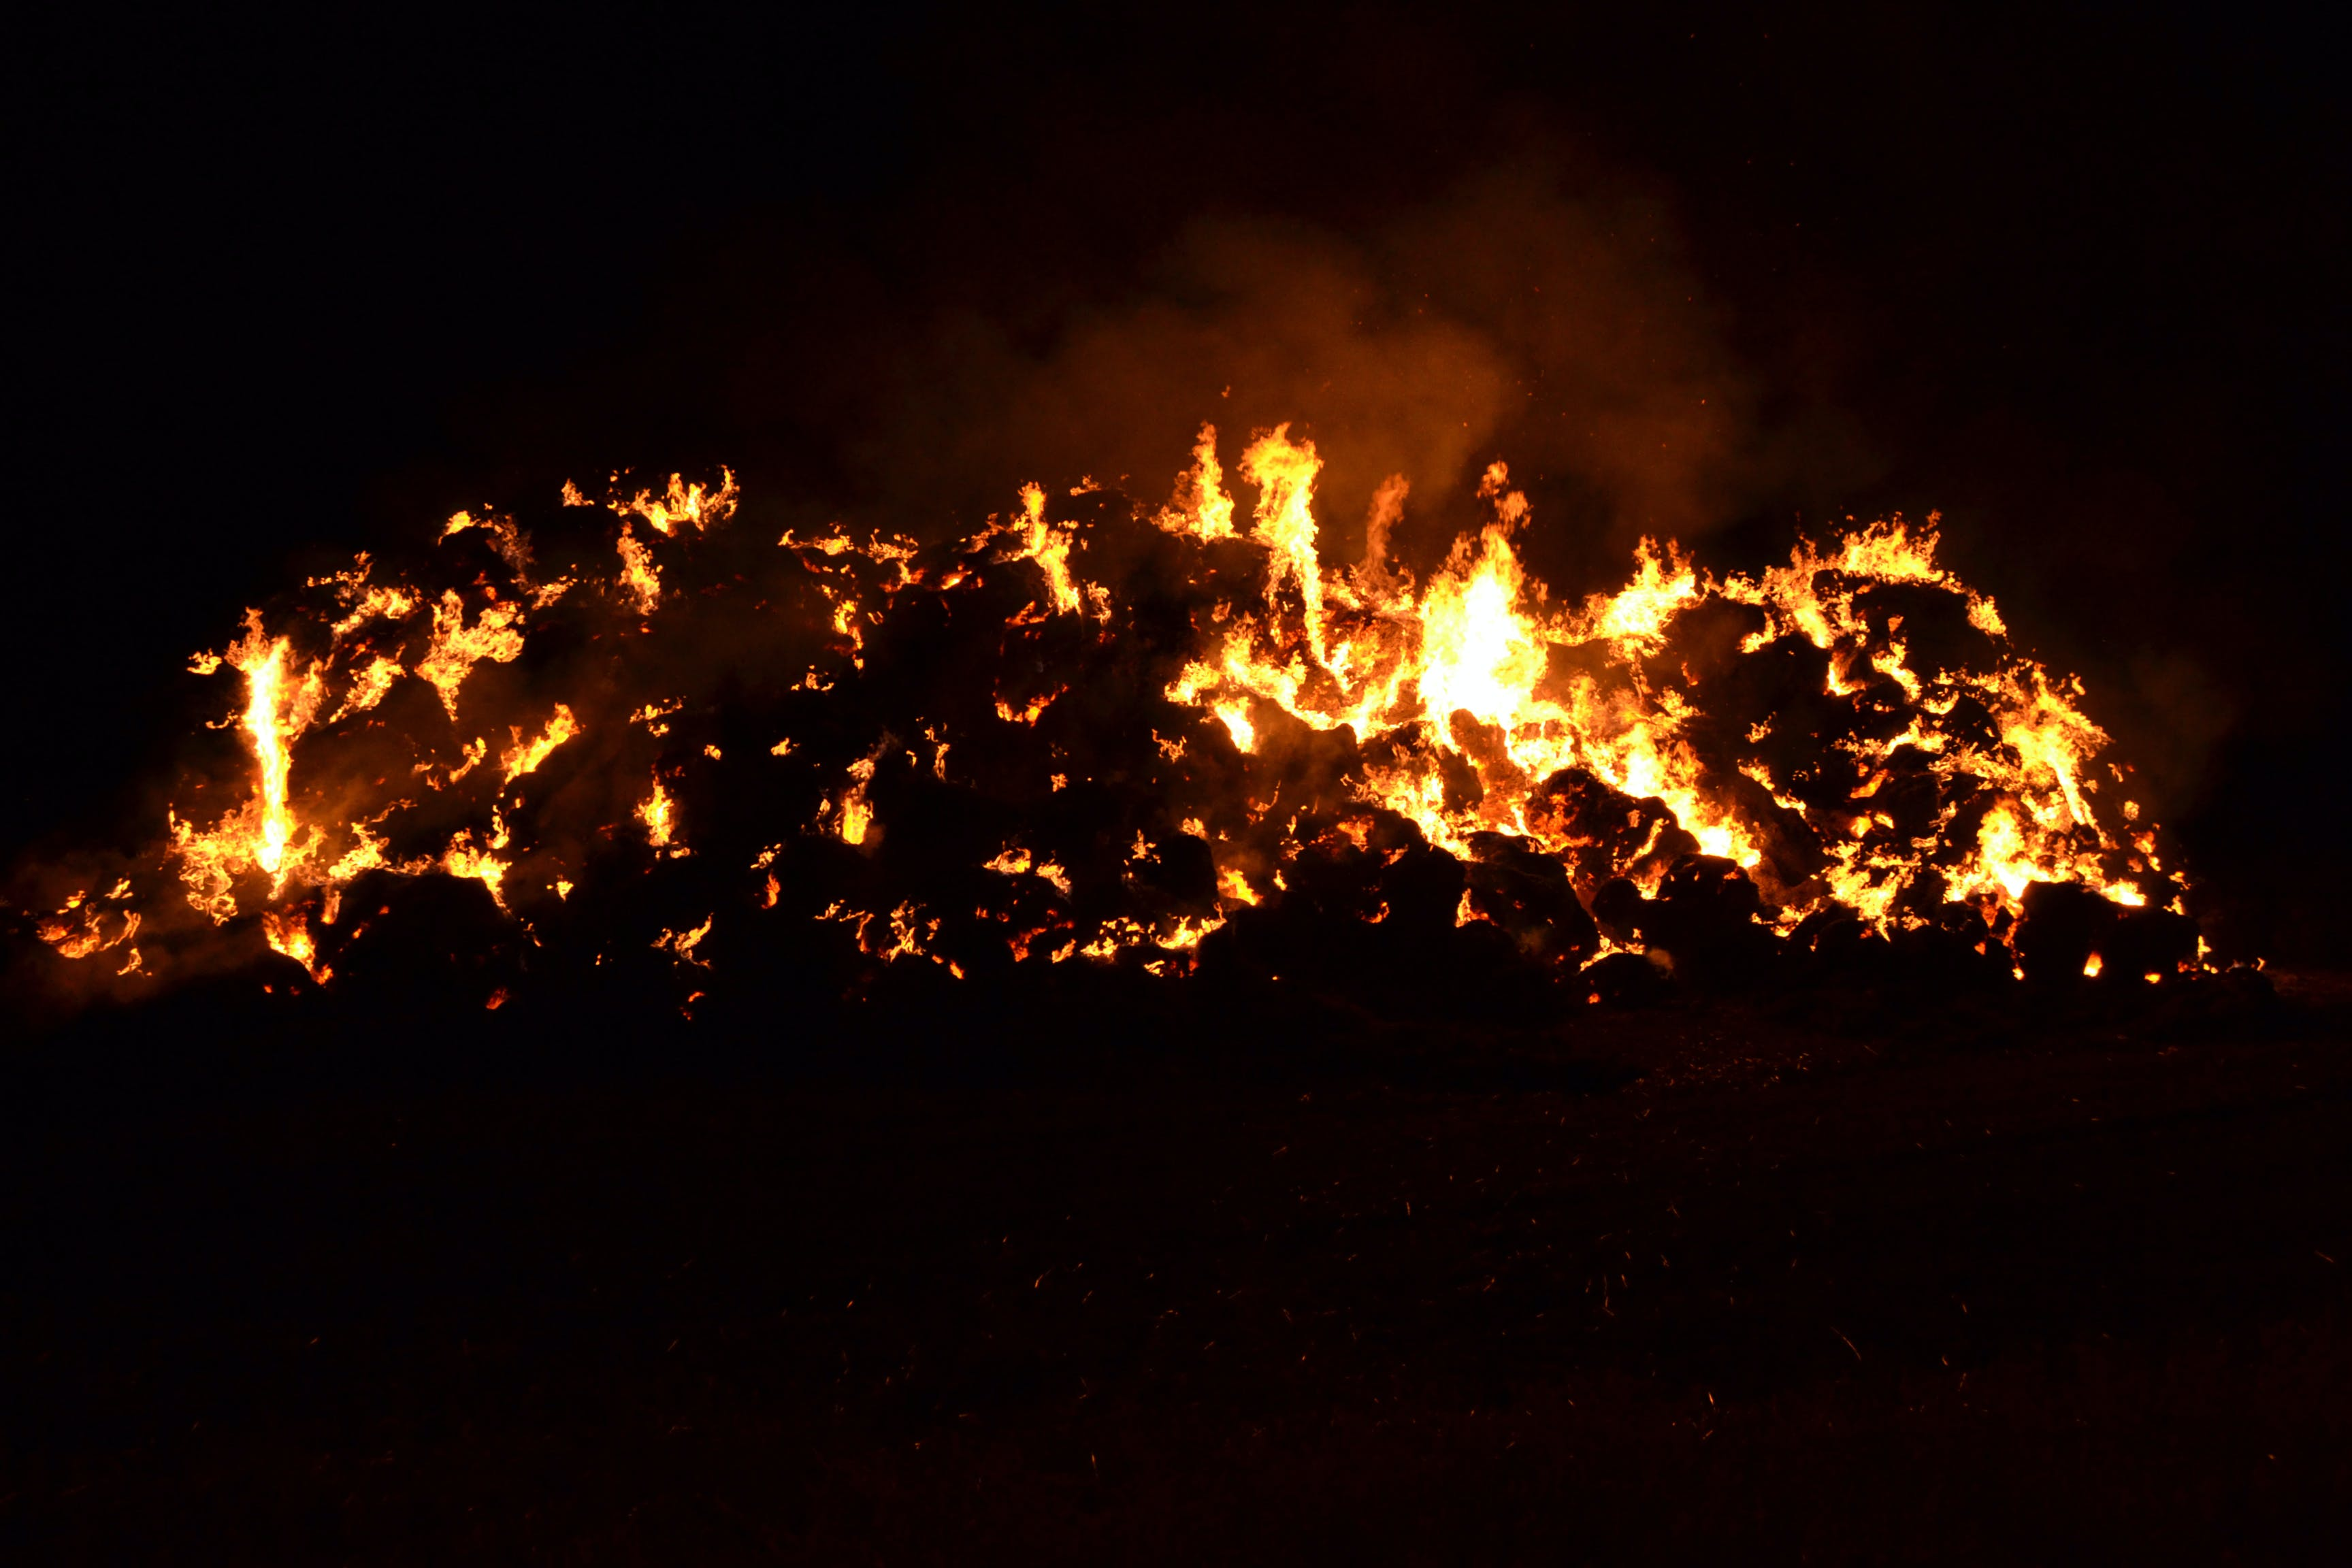 Free stock photo of incendie foin.